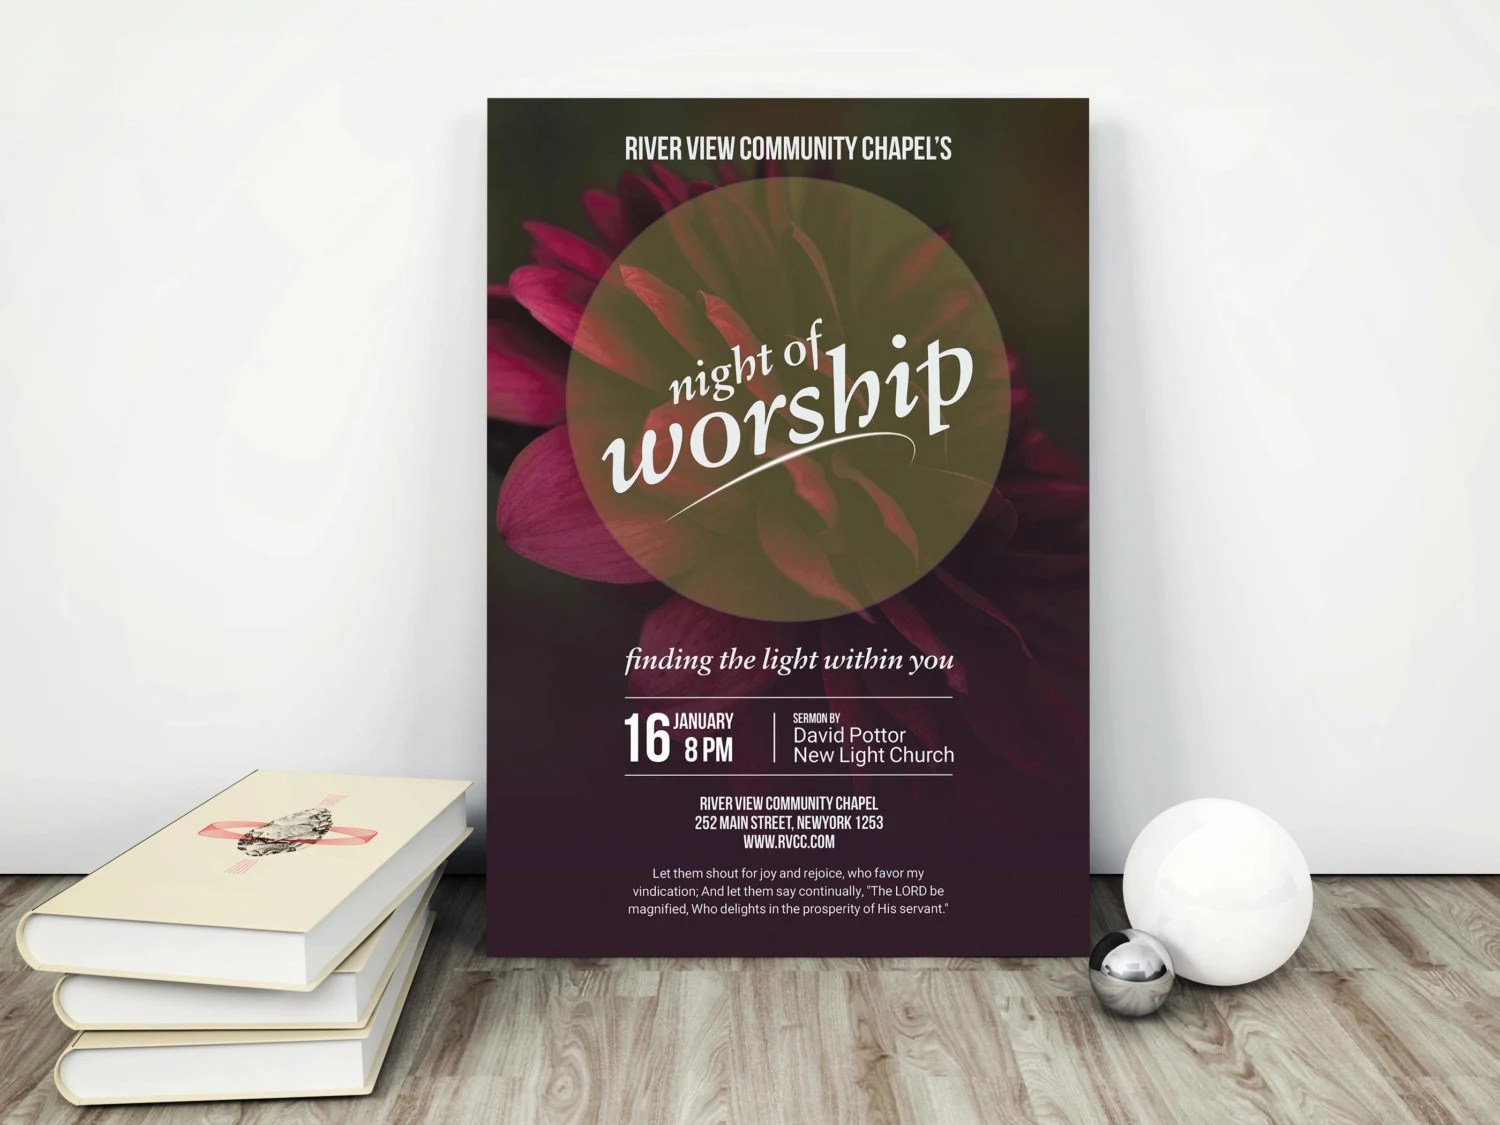 Church Flyer Church Event Church Marketing Worship Night Etsy